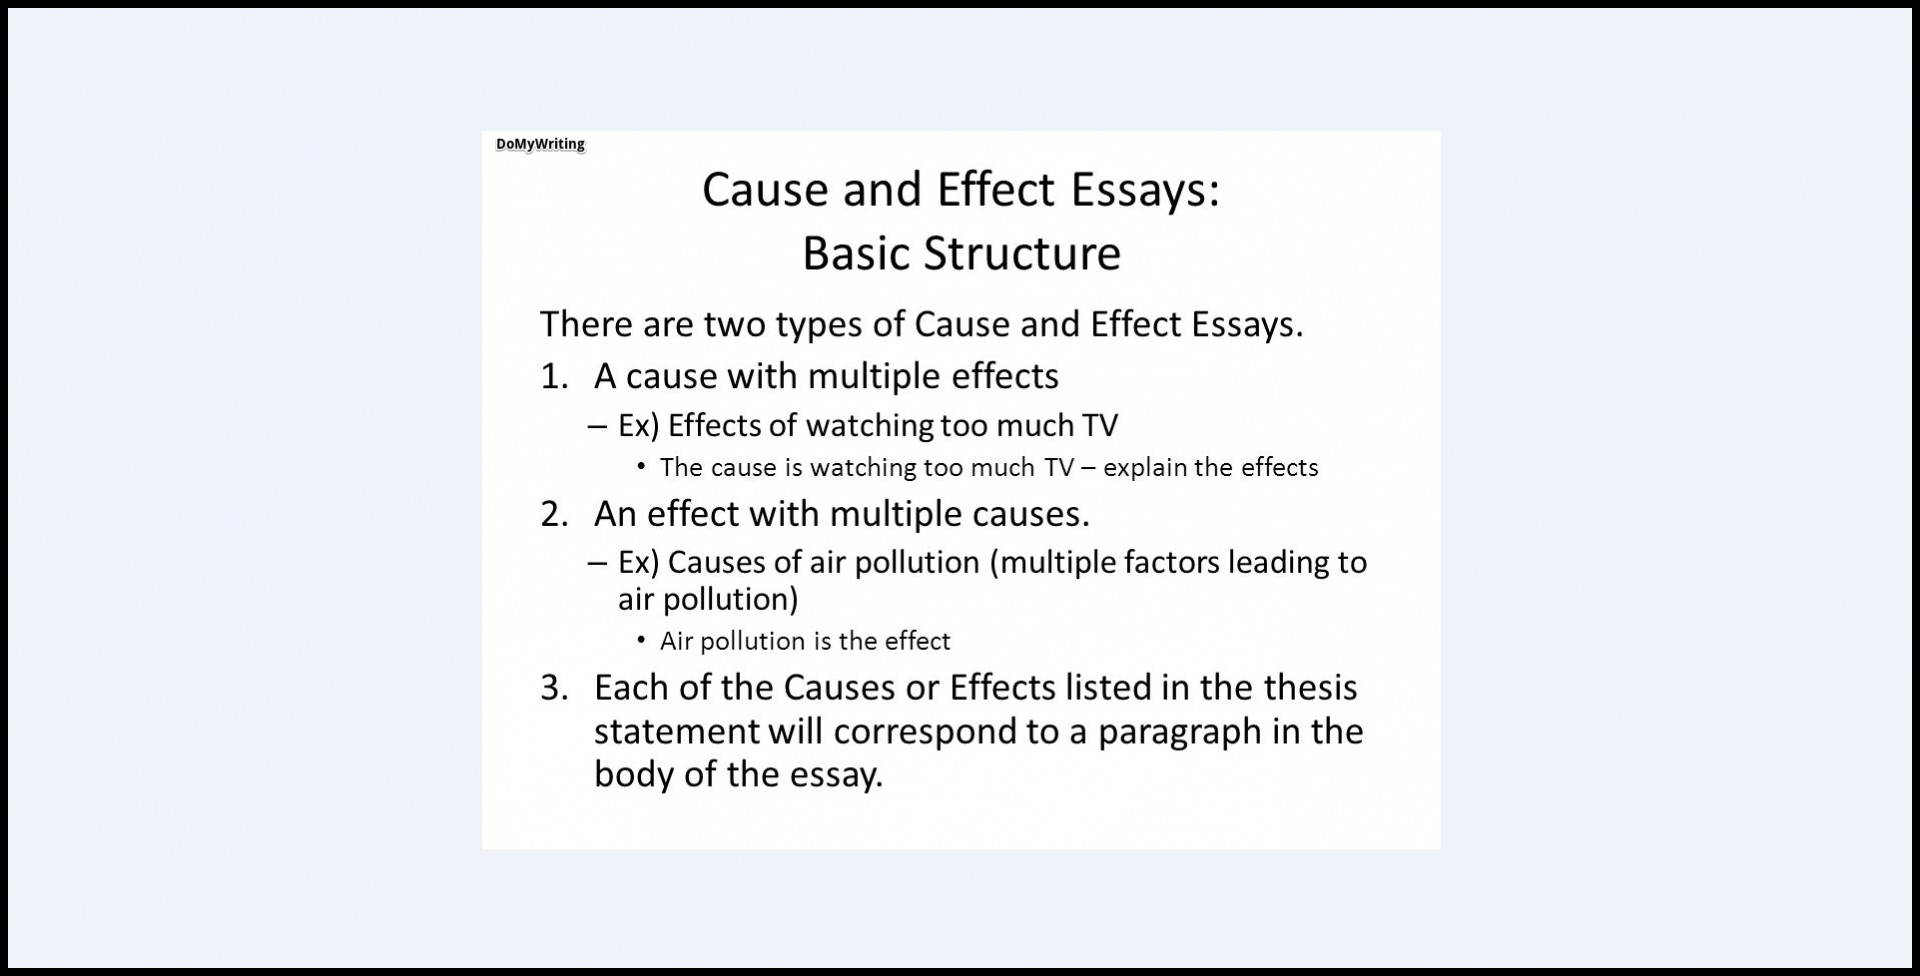 017 Essay Topics Cause And Effect Structure Archaicawful For High School Students In India The Crucible 1920